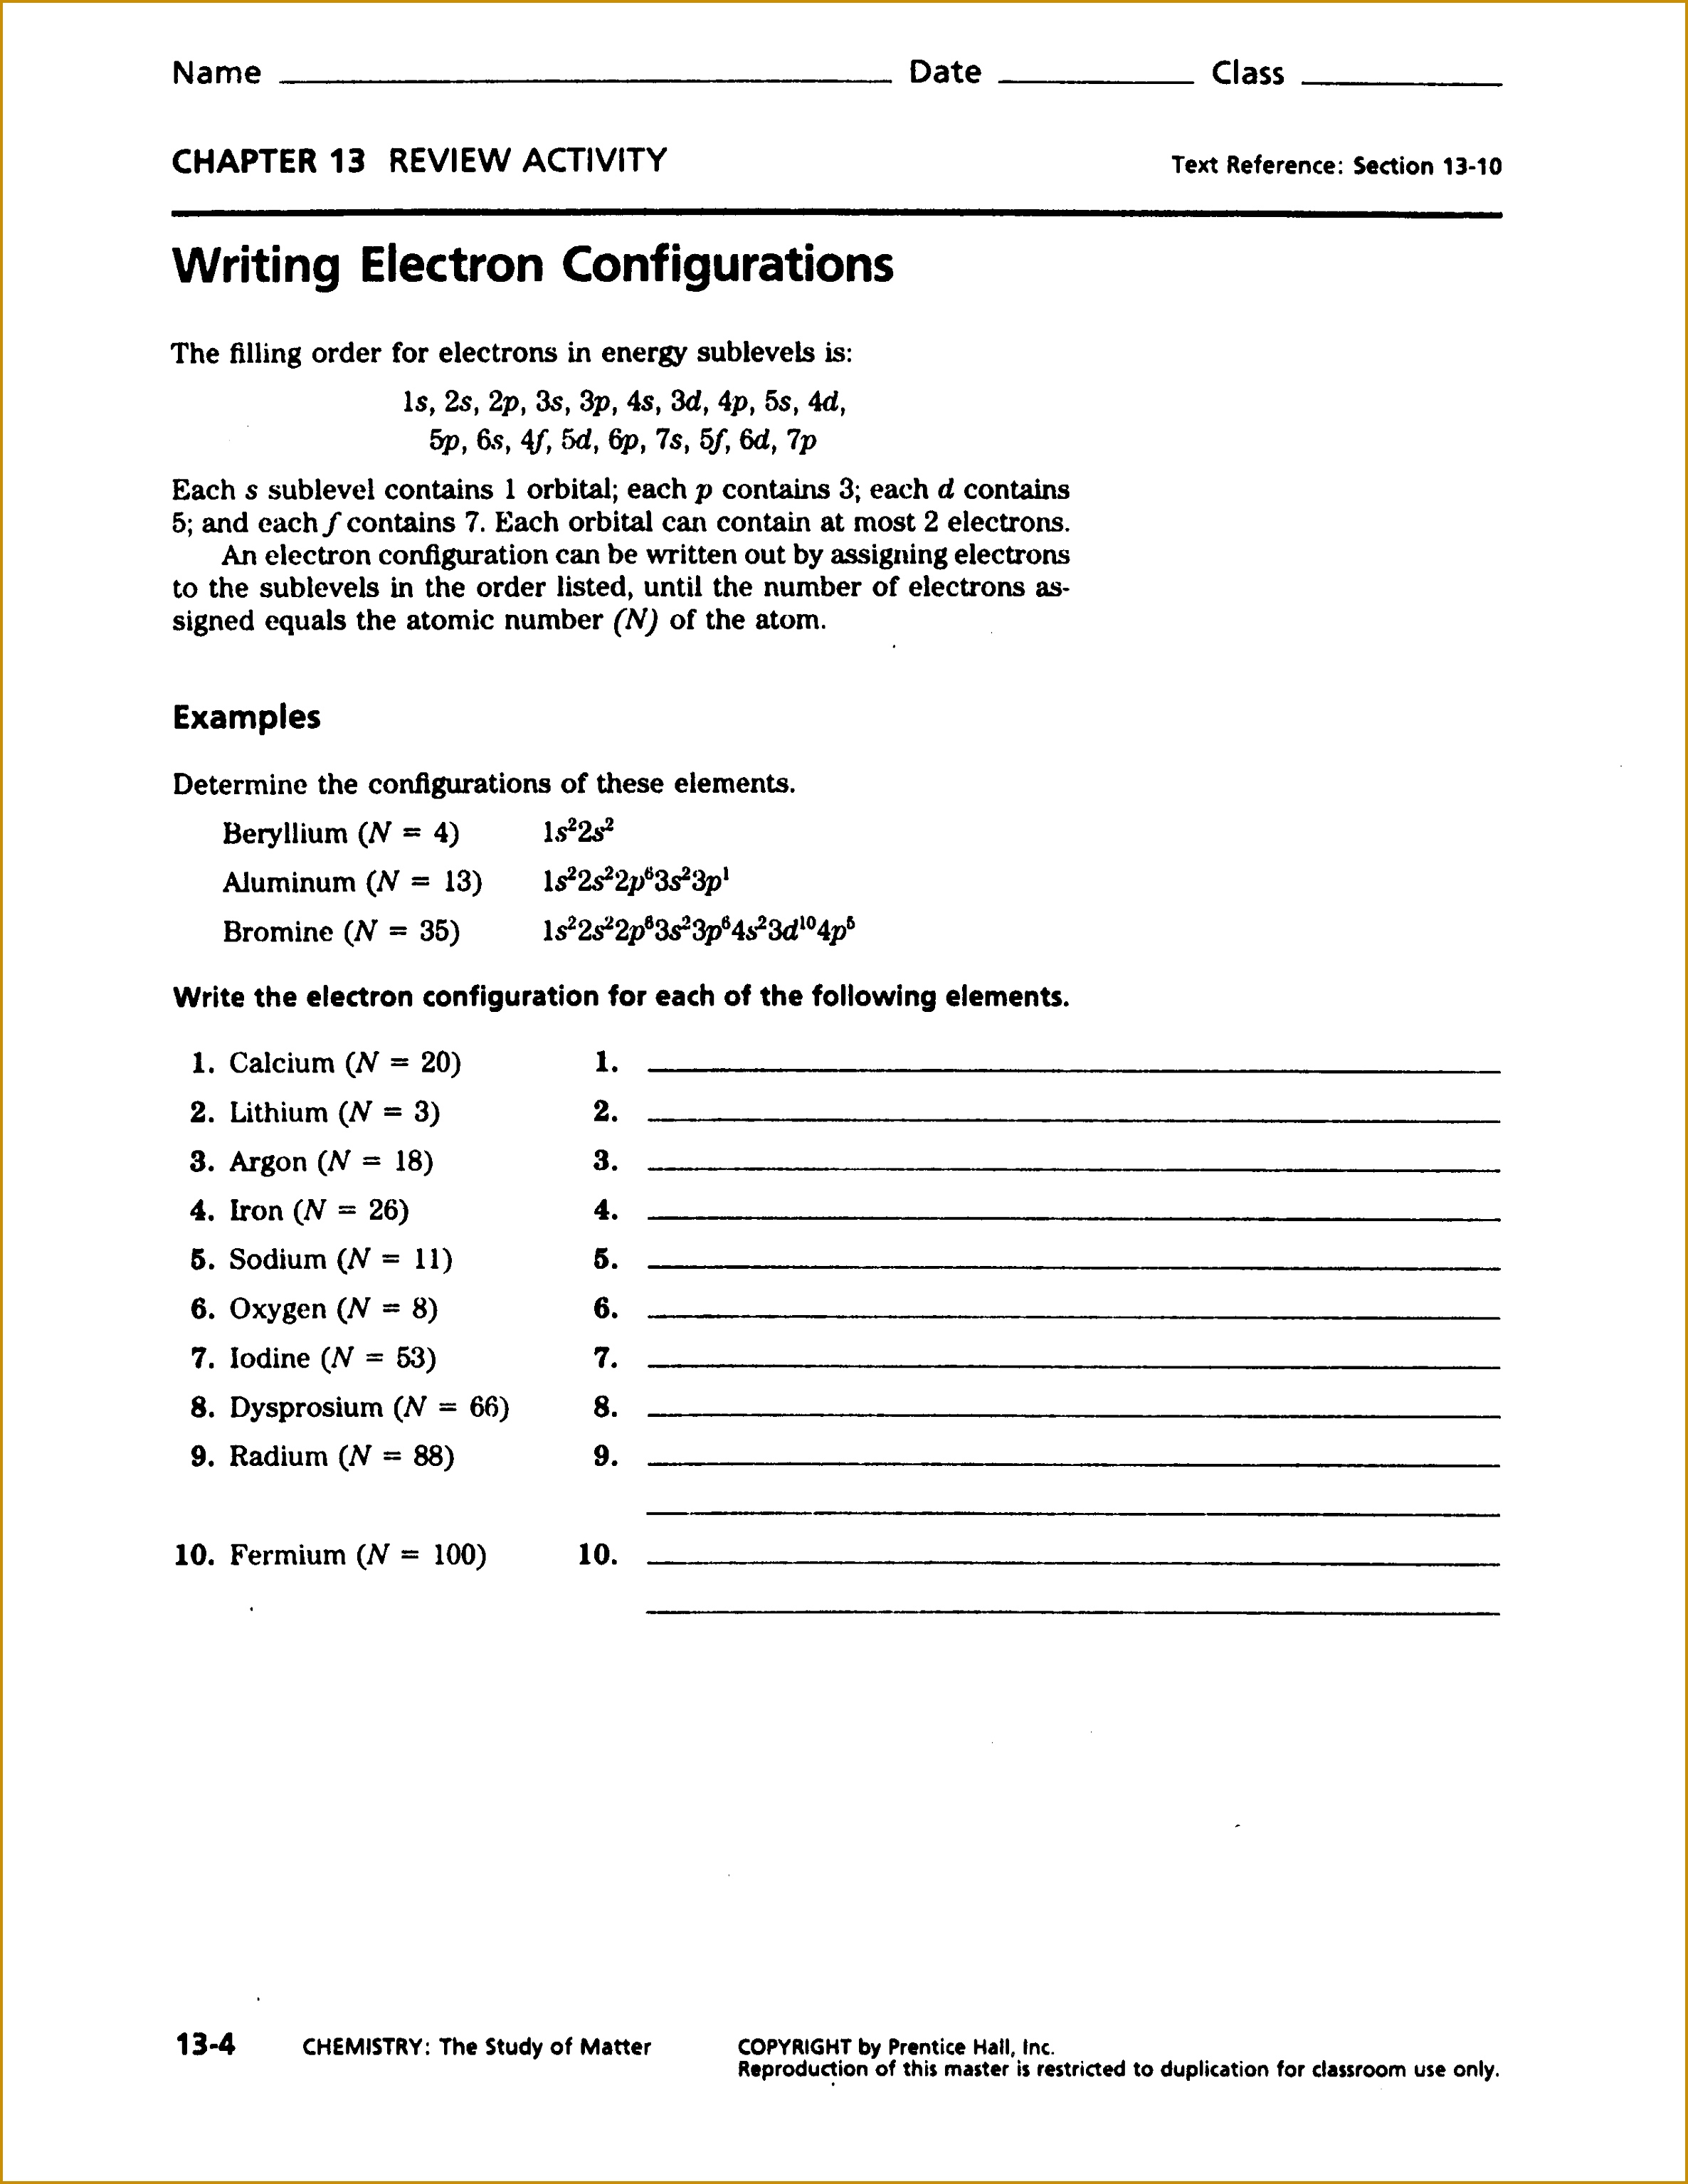 Electron Configuration Worksheet Answers Part A Worksheets for 30692372